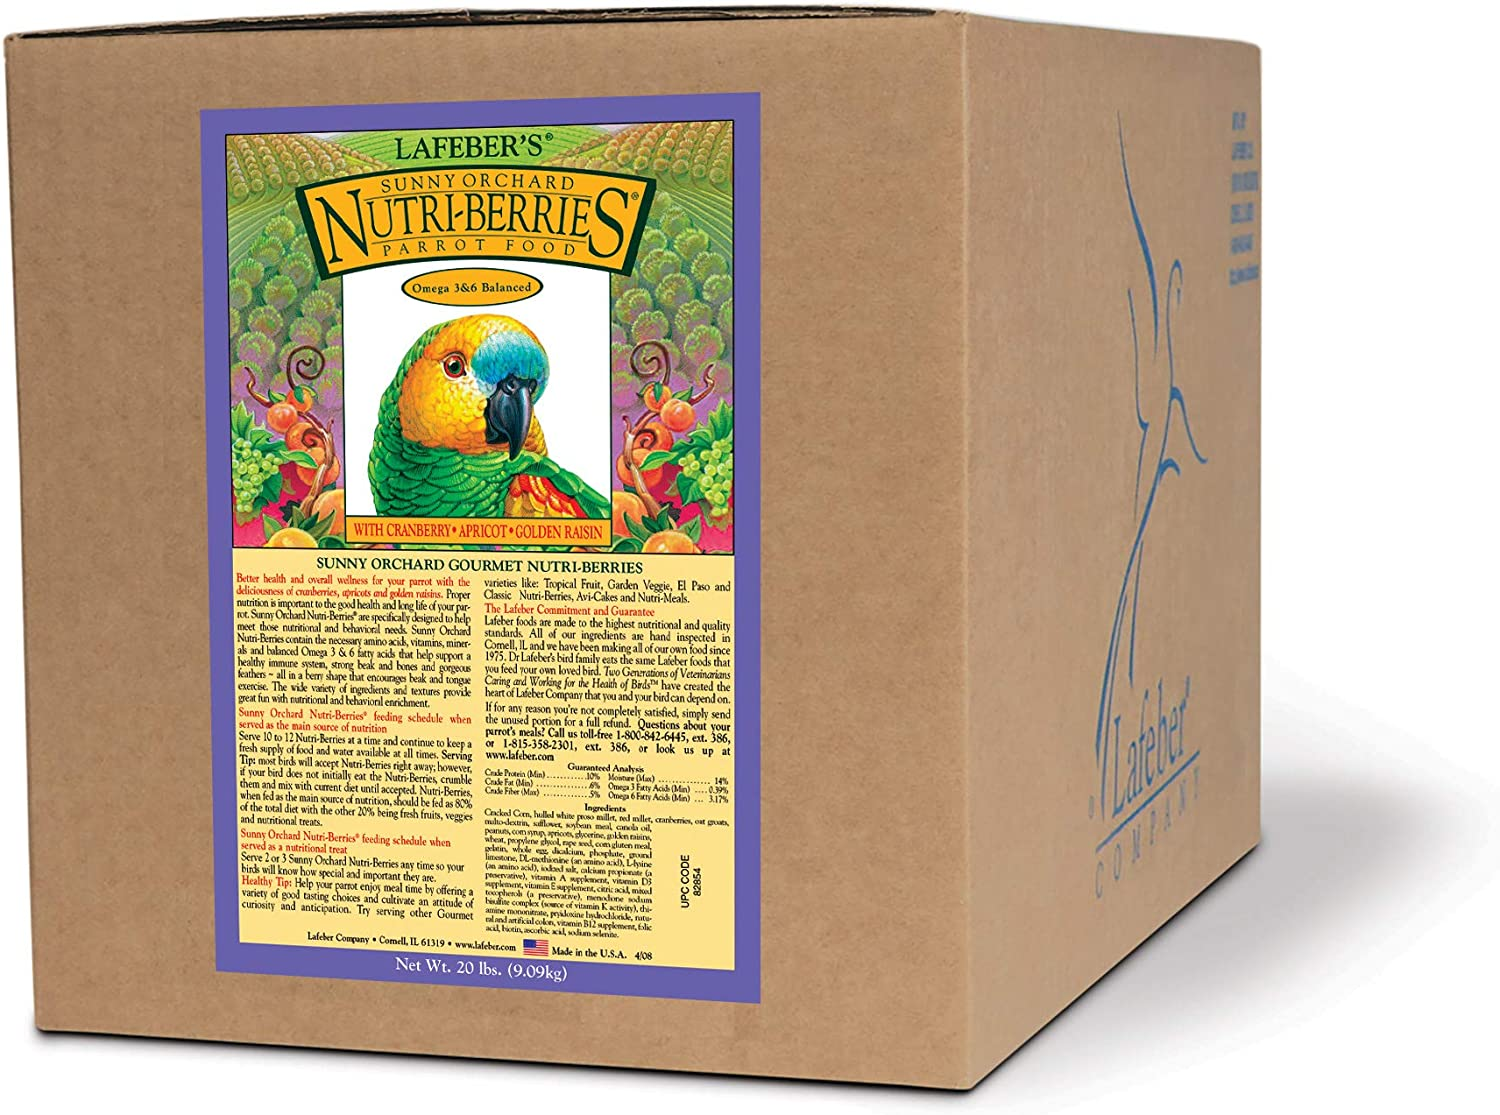 LAFEBER'S Sunny Orchard Nutri-Berries Pet Bird Food, Made with Non-GMO and Human-Grade Ingredients, for Parrots 20 lbs